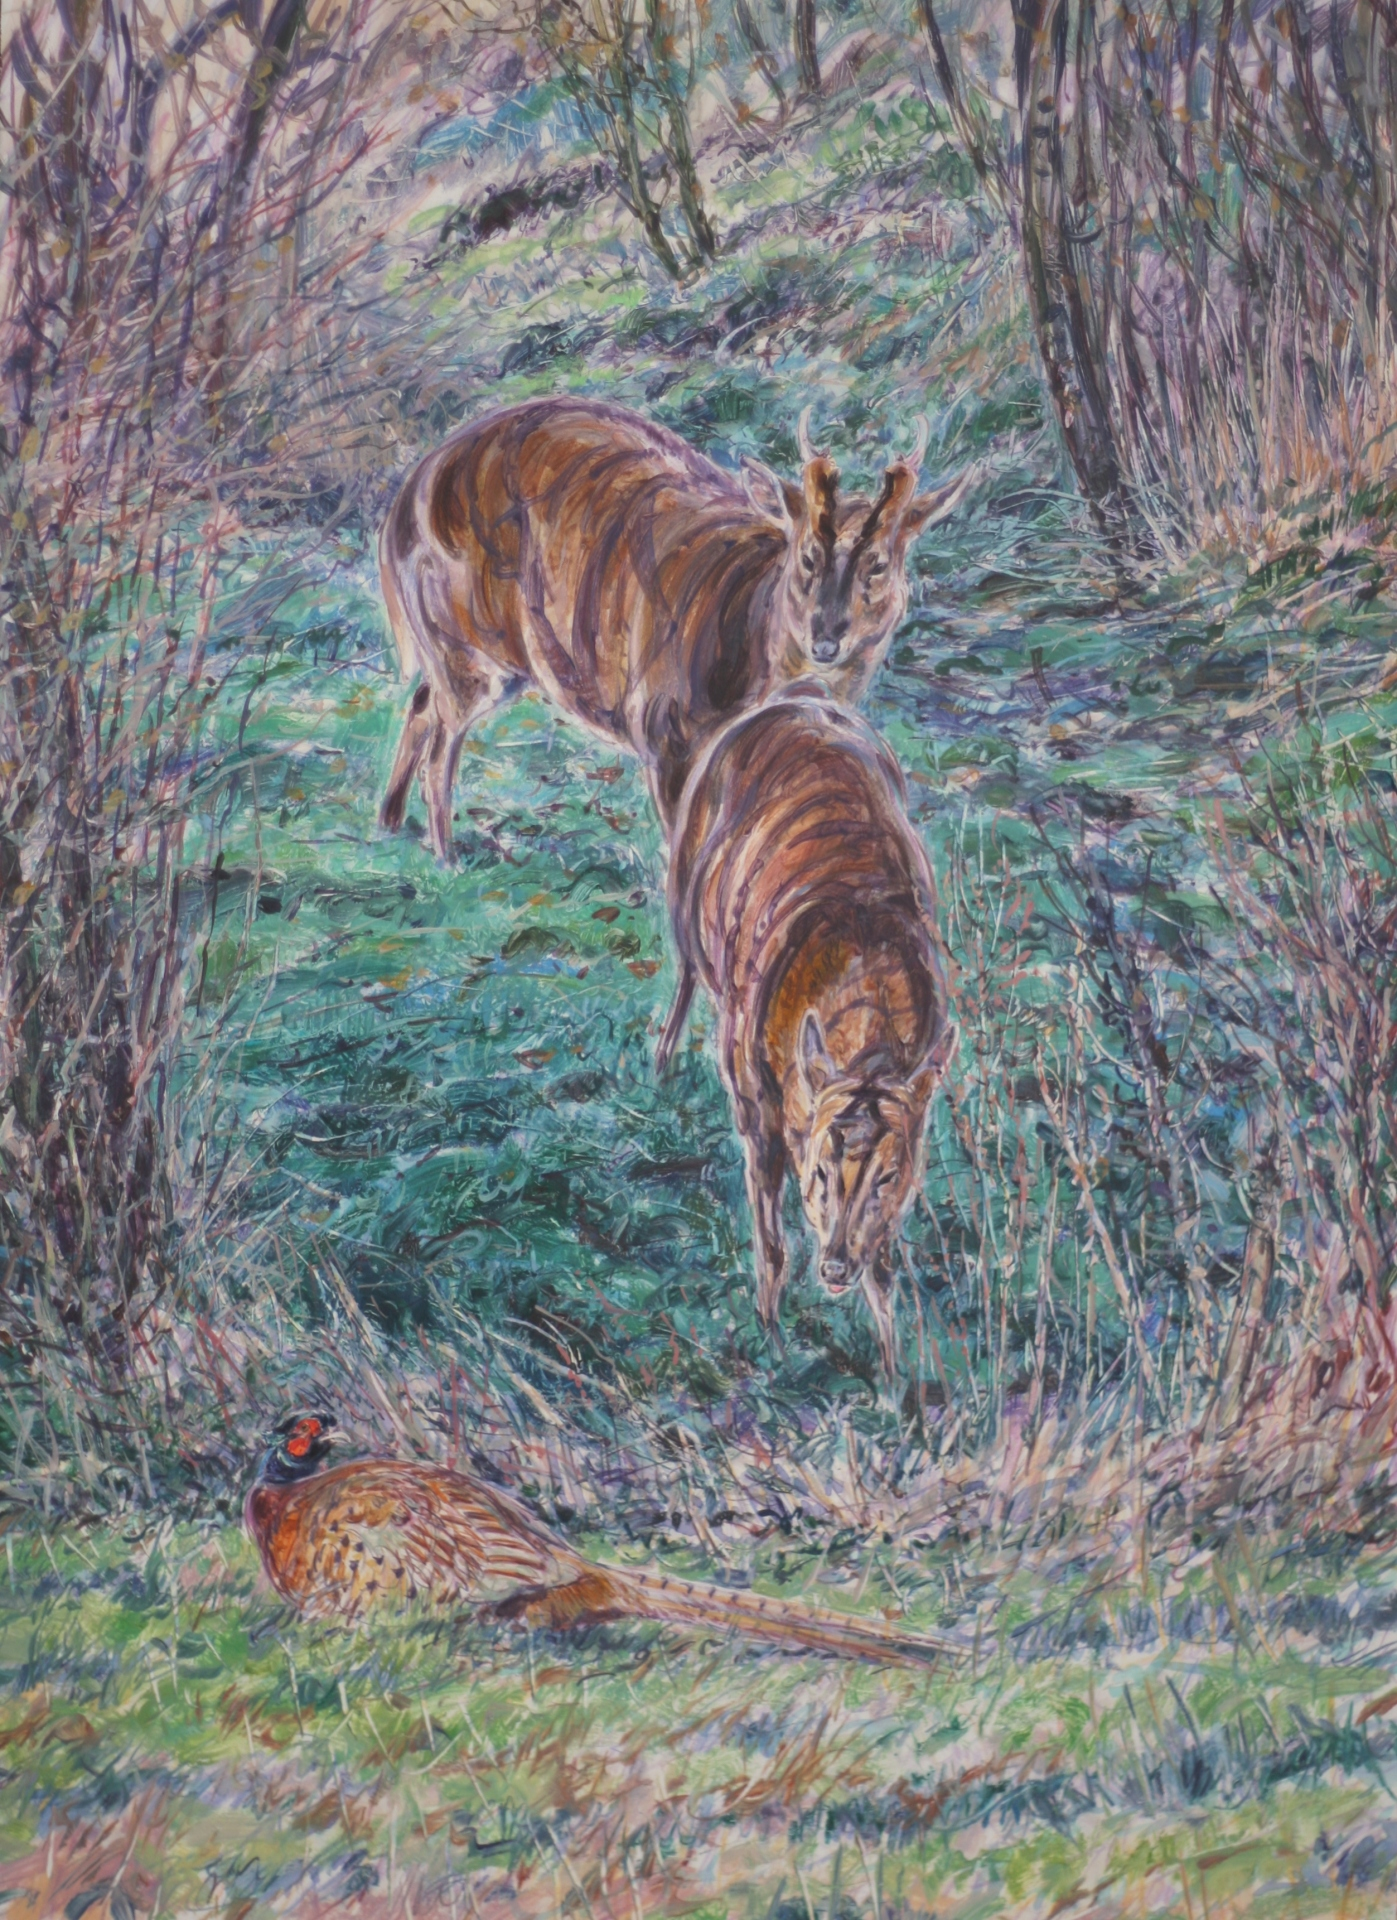 Muntjac Deer and Pheasant, Suffolk